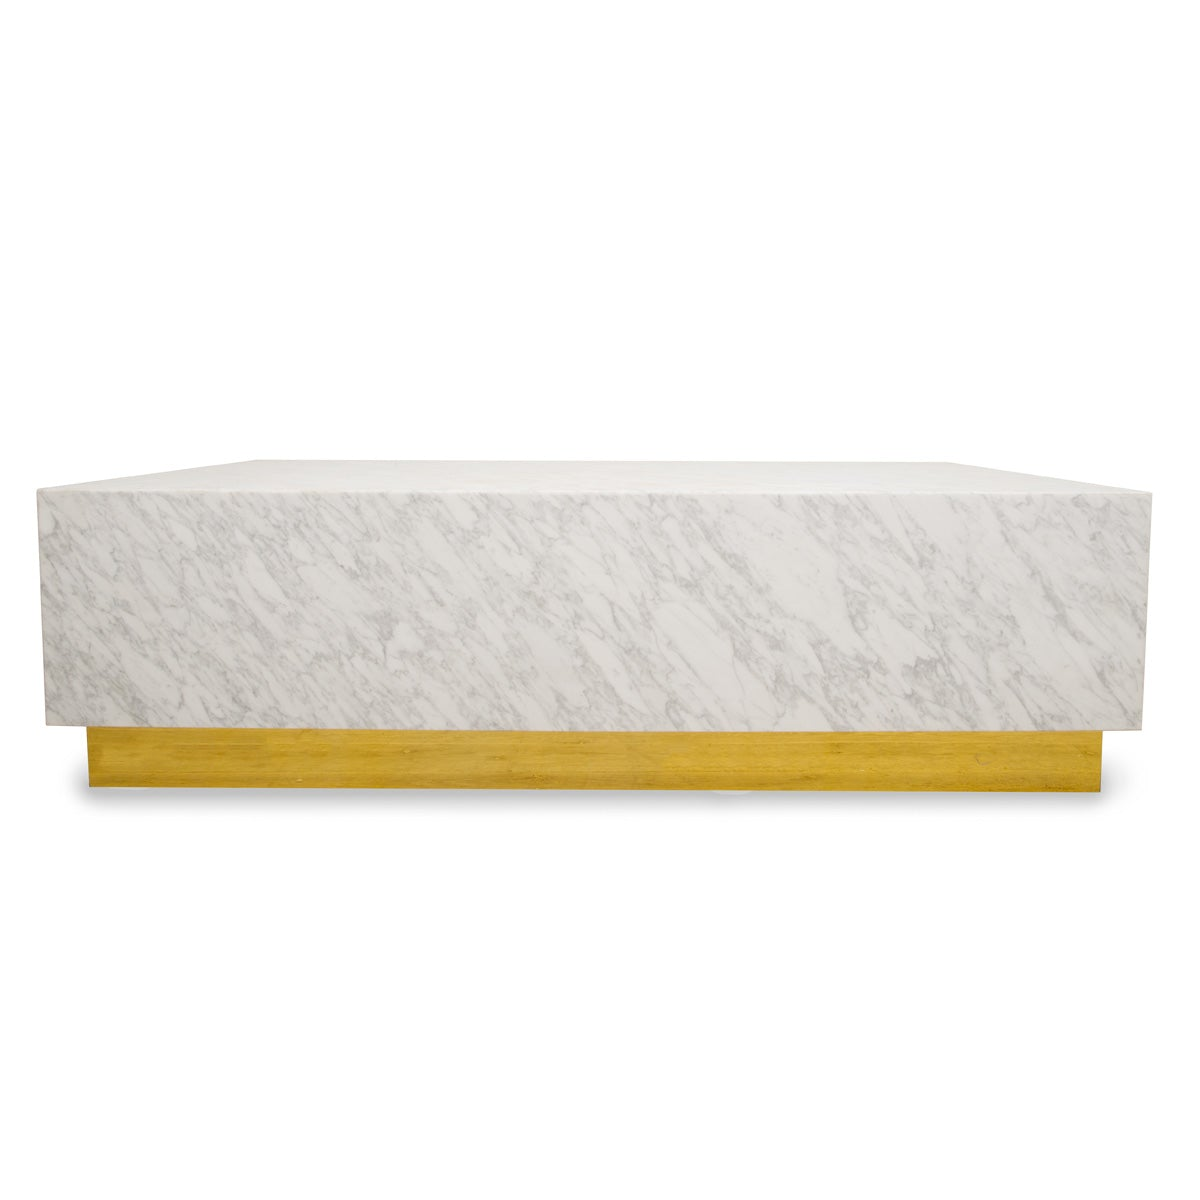 Carrara Coffee Table - ModShop1.com